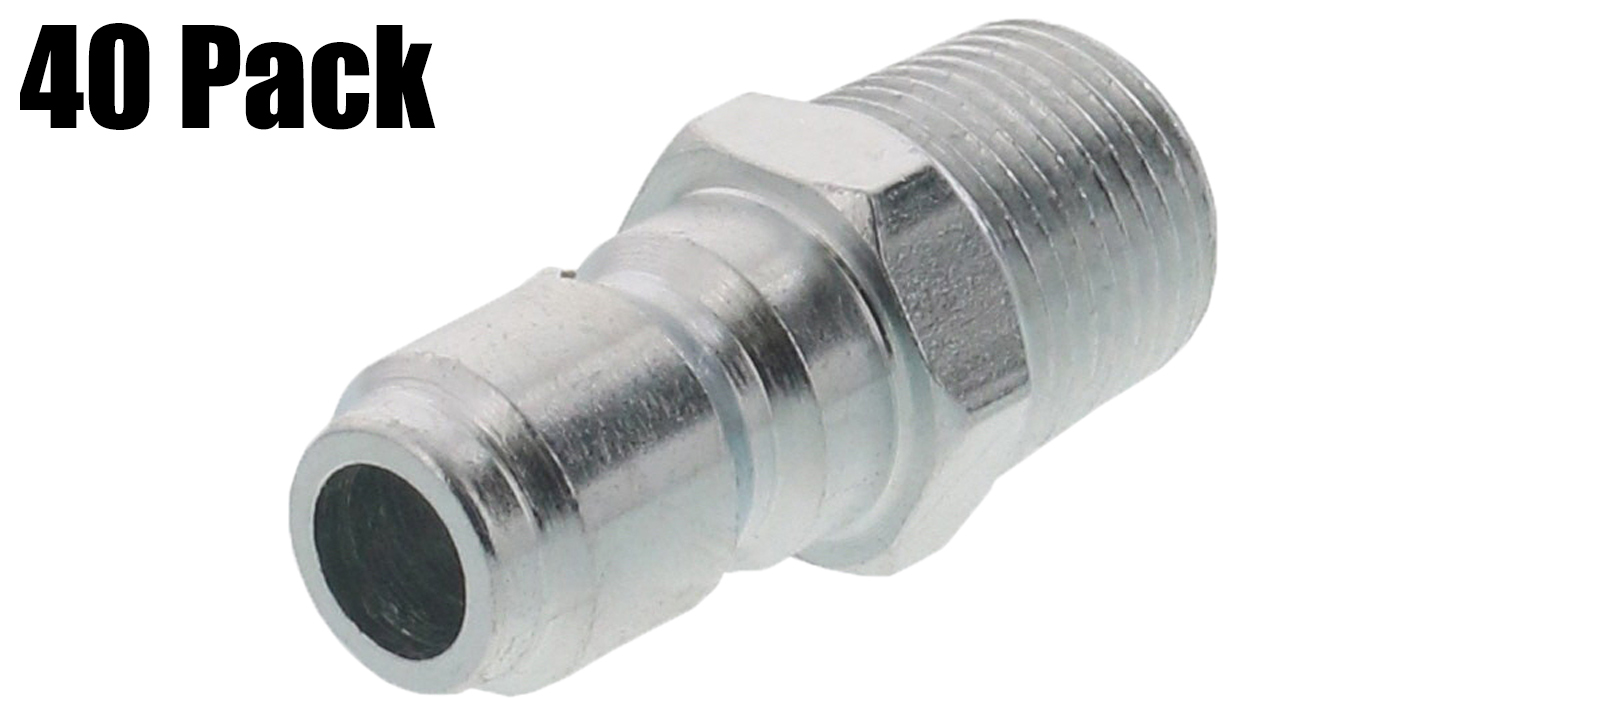 """General Pump Pressure Washer 3 8"""" Male NPT-M Quick Connect Plug 4000 PSI (QTY 40) by General Pump"""